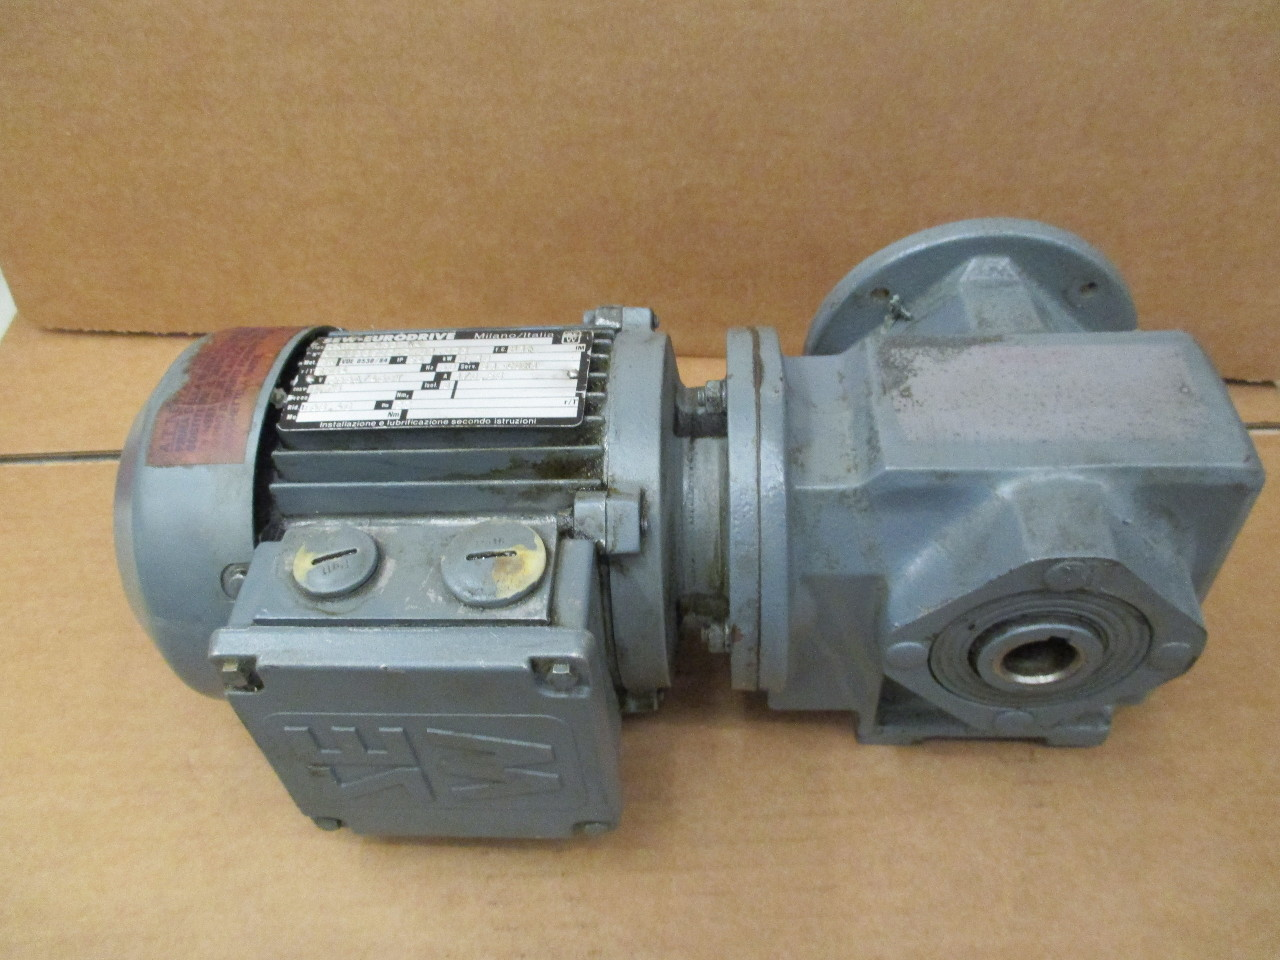 Sew eurodrive gear reducer motor type saf32 d63 n4 daves for Sew motors and drives